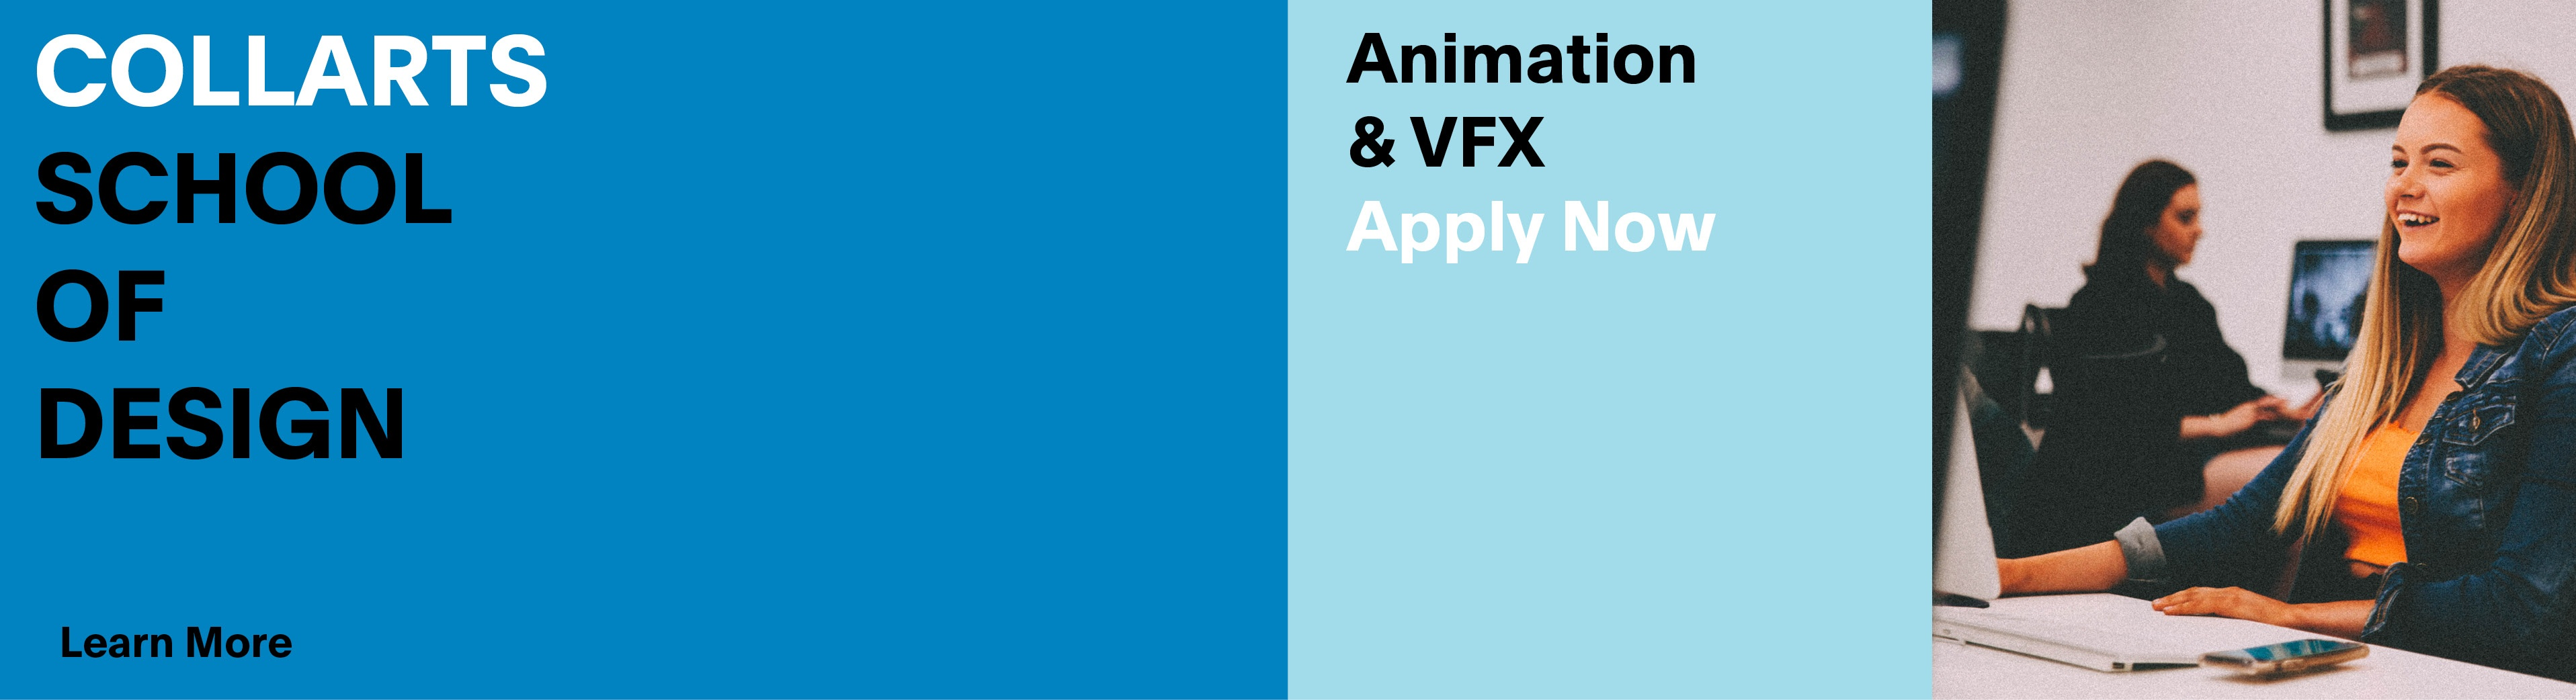 Animation & VFX - Apply Now